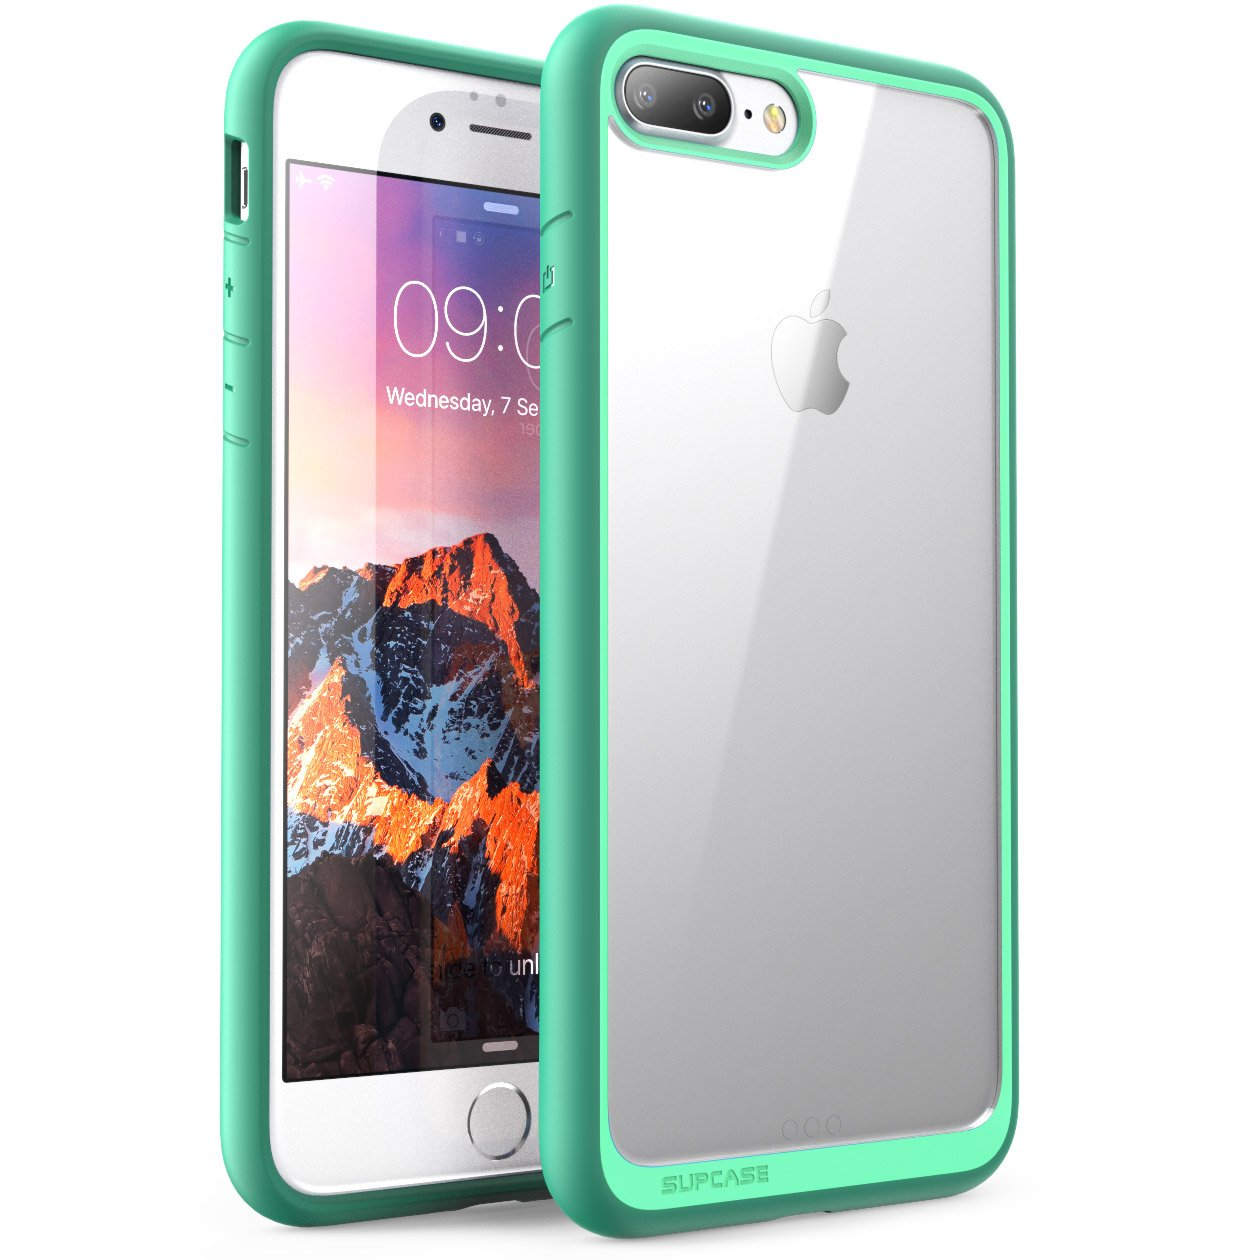 iphone 8 plus case. iphone 7 plus case, 8 supcase unicorn beetle style premium hybrid protective clear case for apple 2016 / 2017: iphone